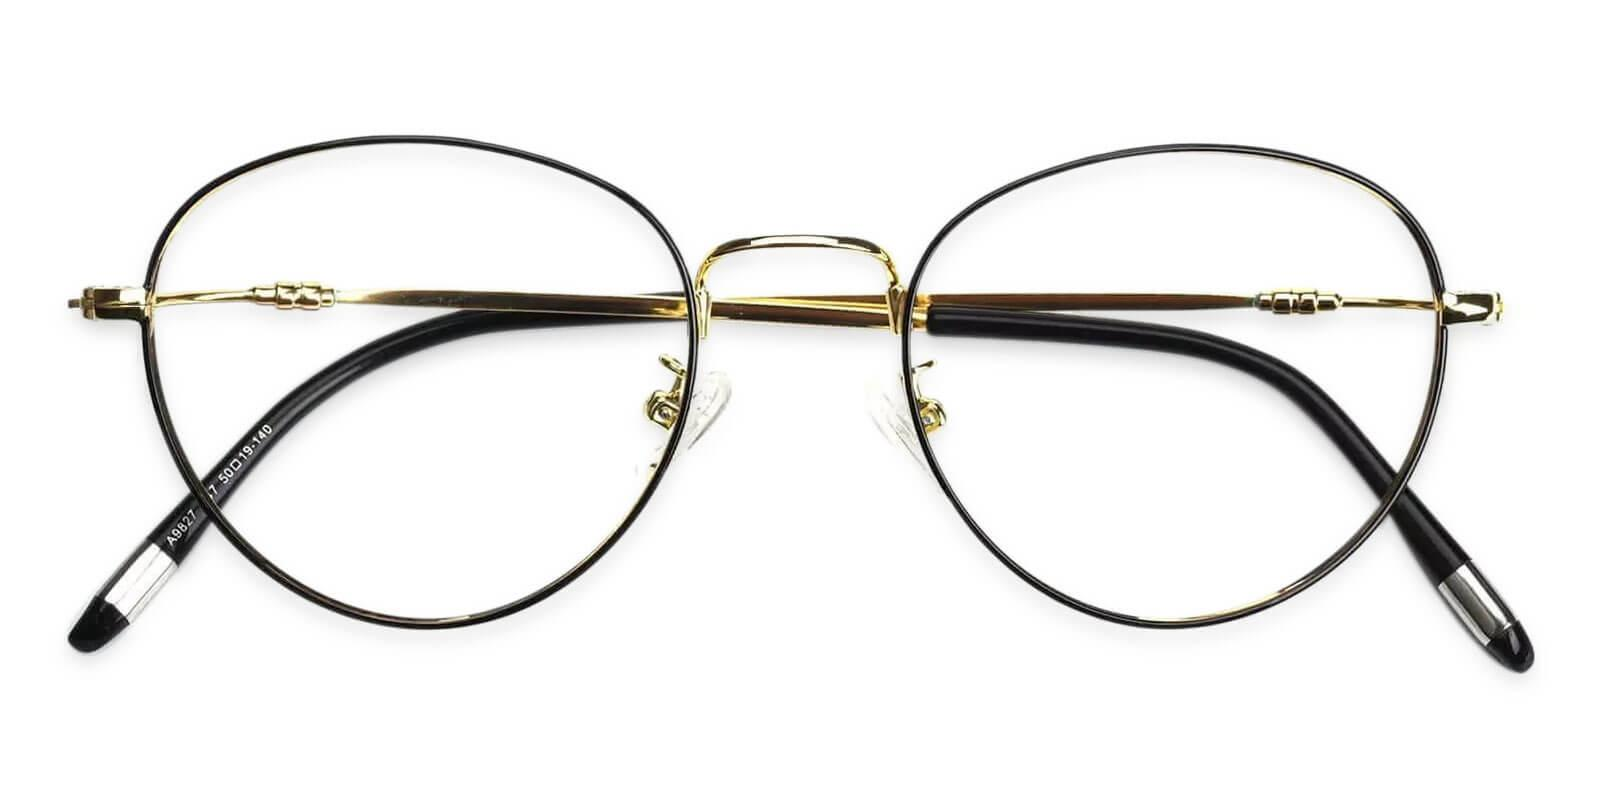 Madison Multicolor Metal Eyeglasses , Lightweight , NosePads Frames from ABBE Glasses